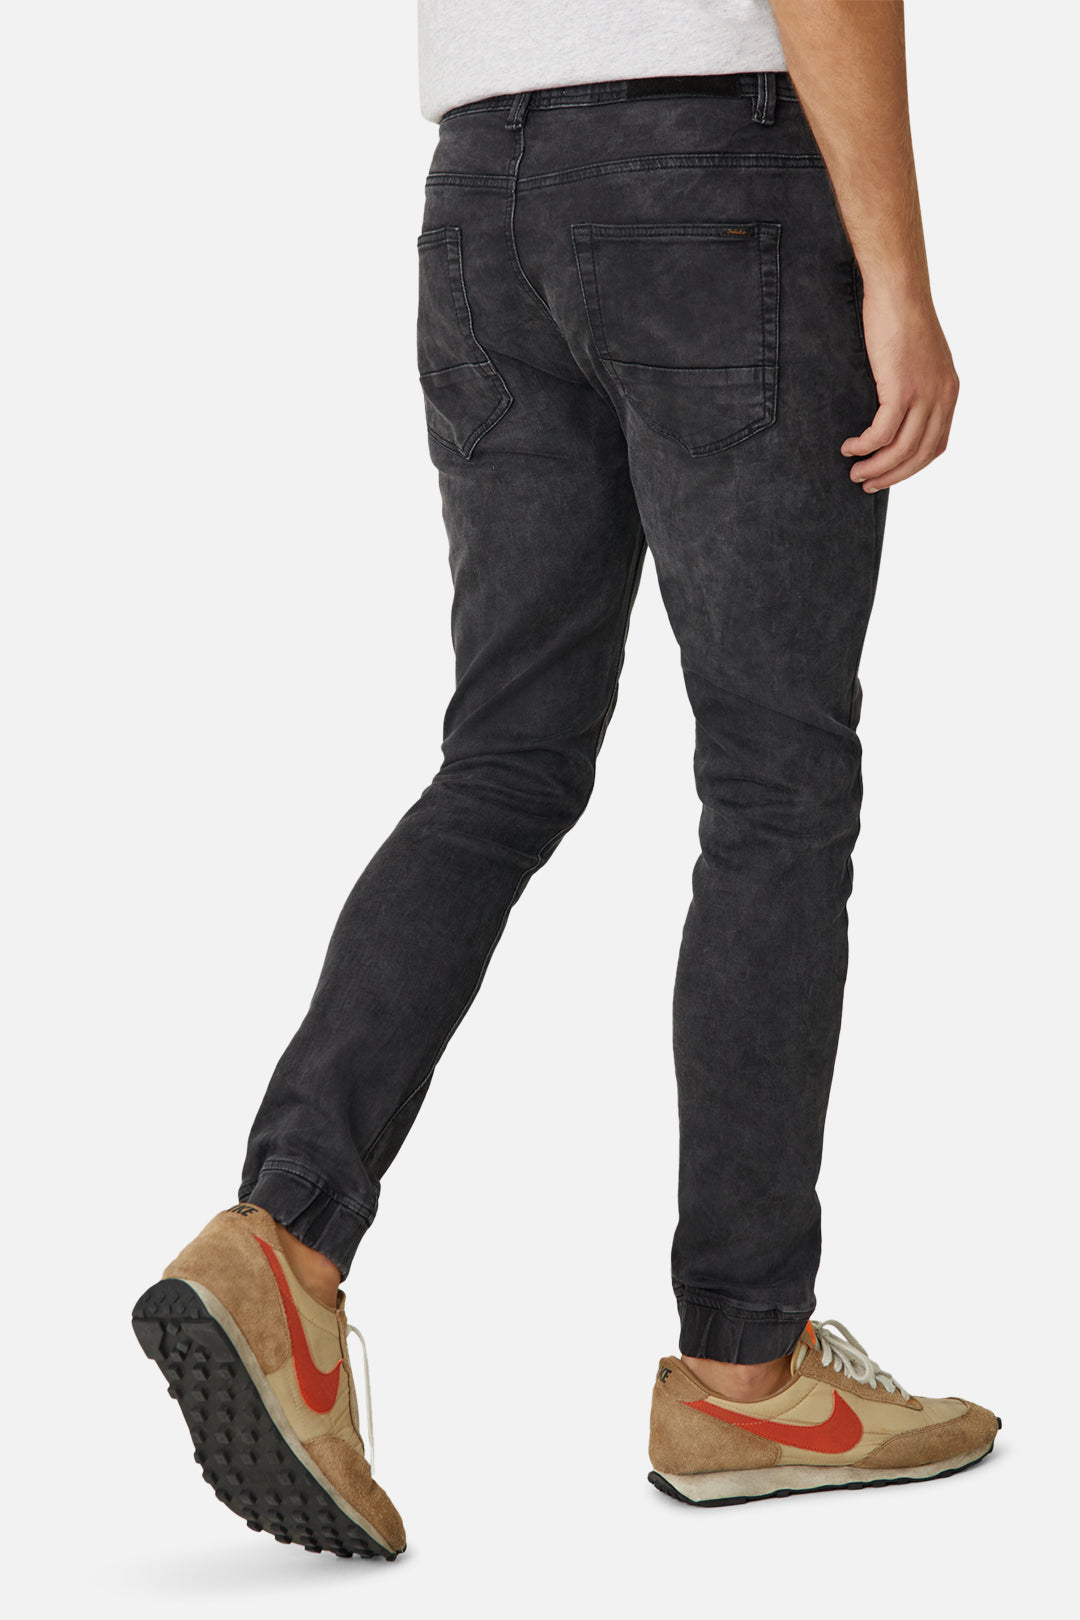 The Drifter Denim Pant - Washed Black